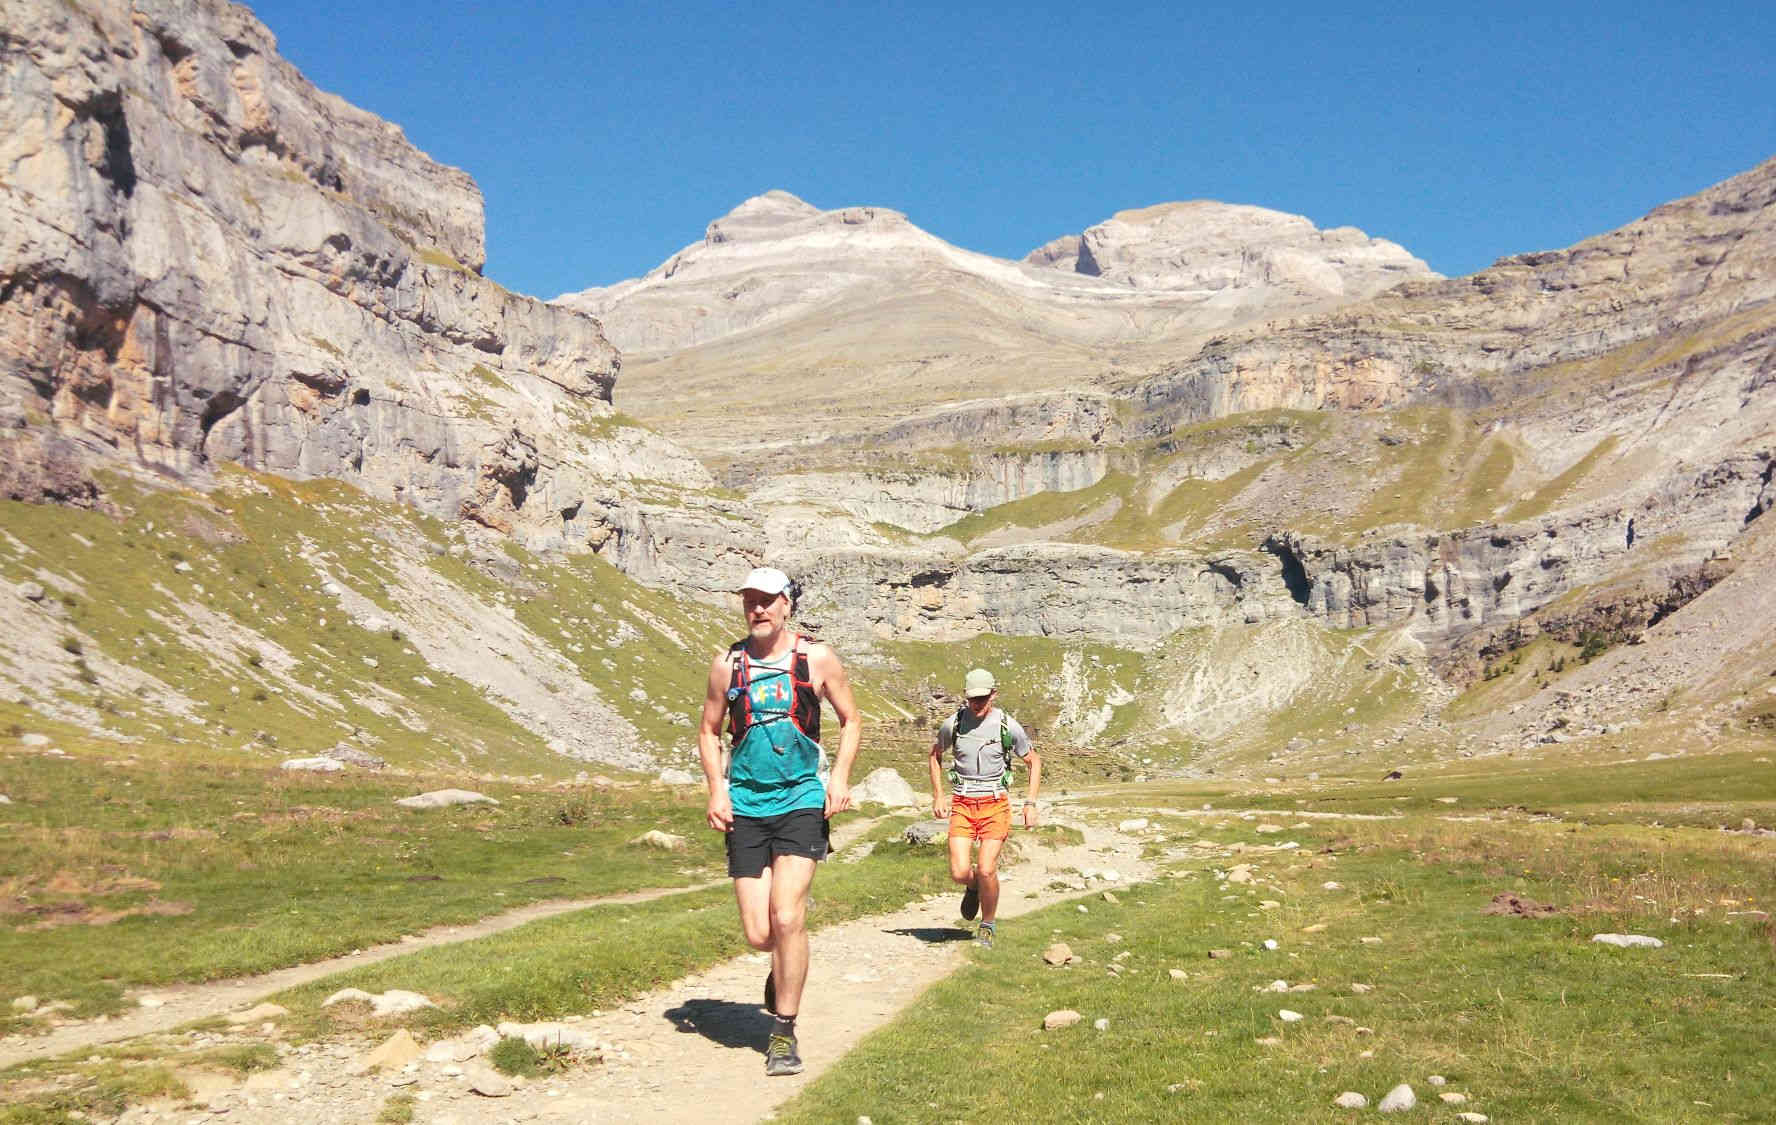 Two trail runners running on the track in the Ordesa valley with Monte Pedido behind on our Trail Running Holiday